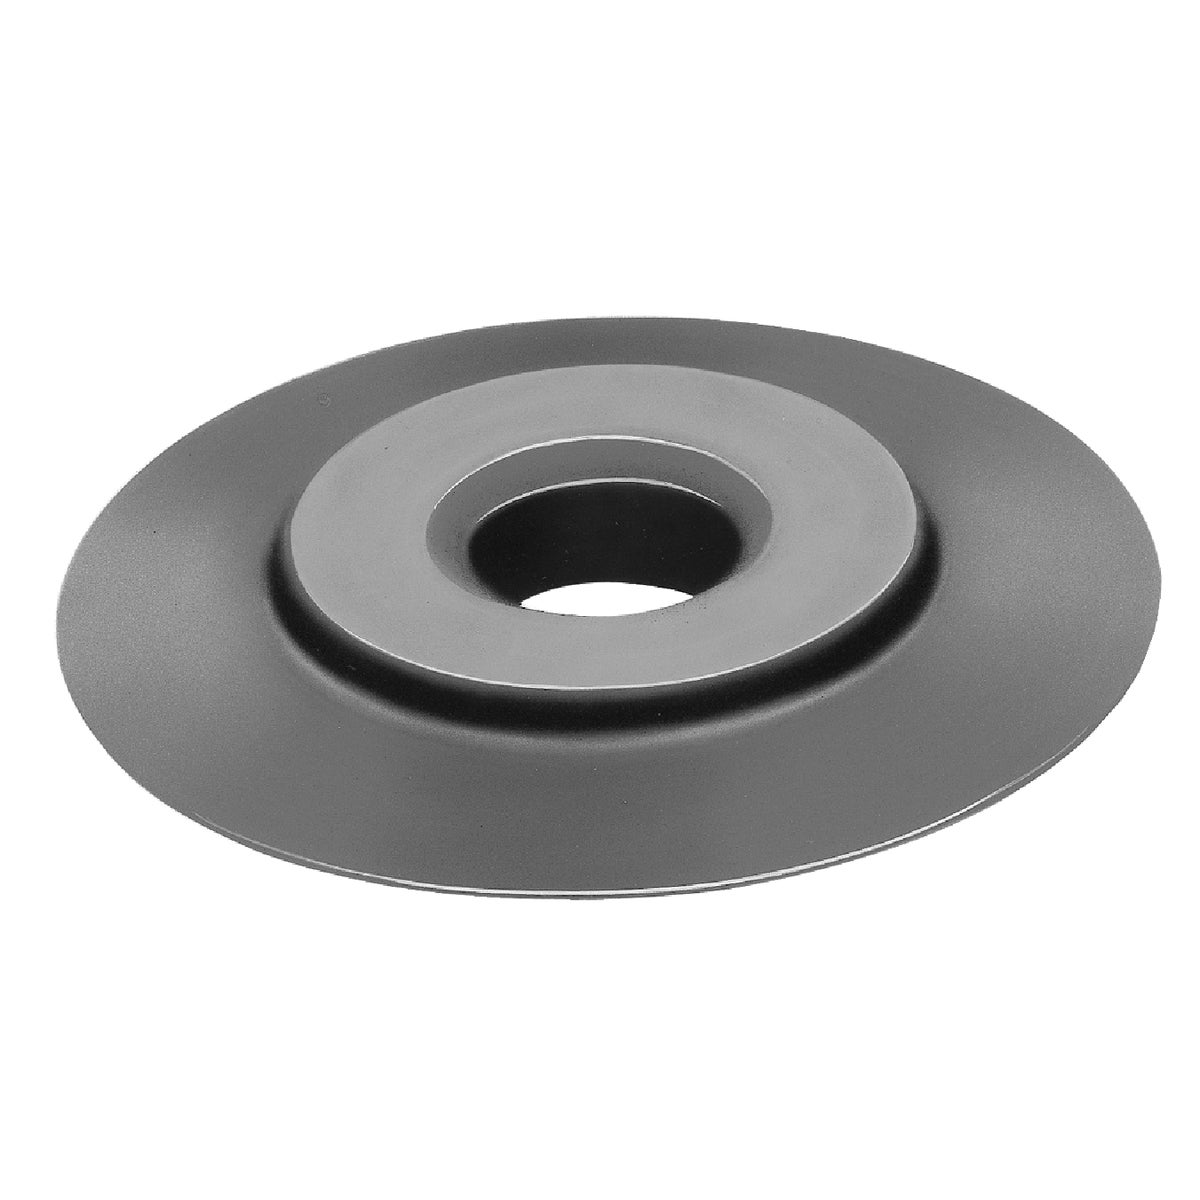 REPLACEMENT CUTTER WHEEL - 33185 by Ridge Tool Co